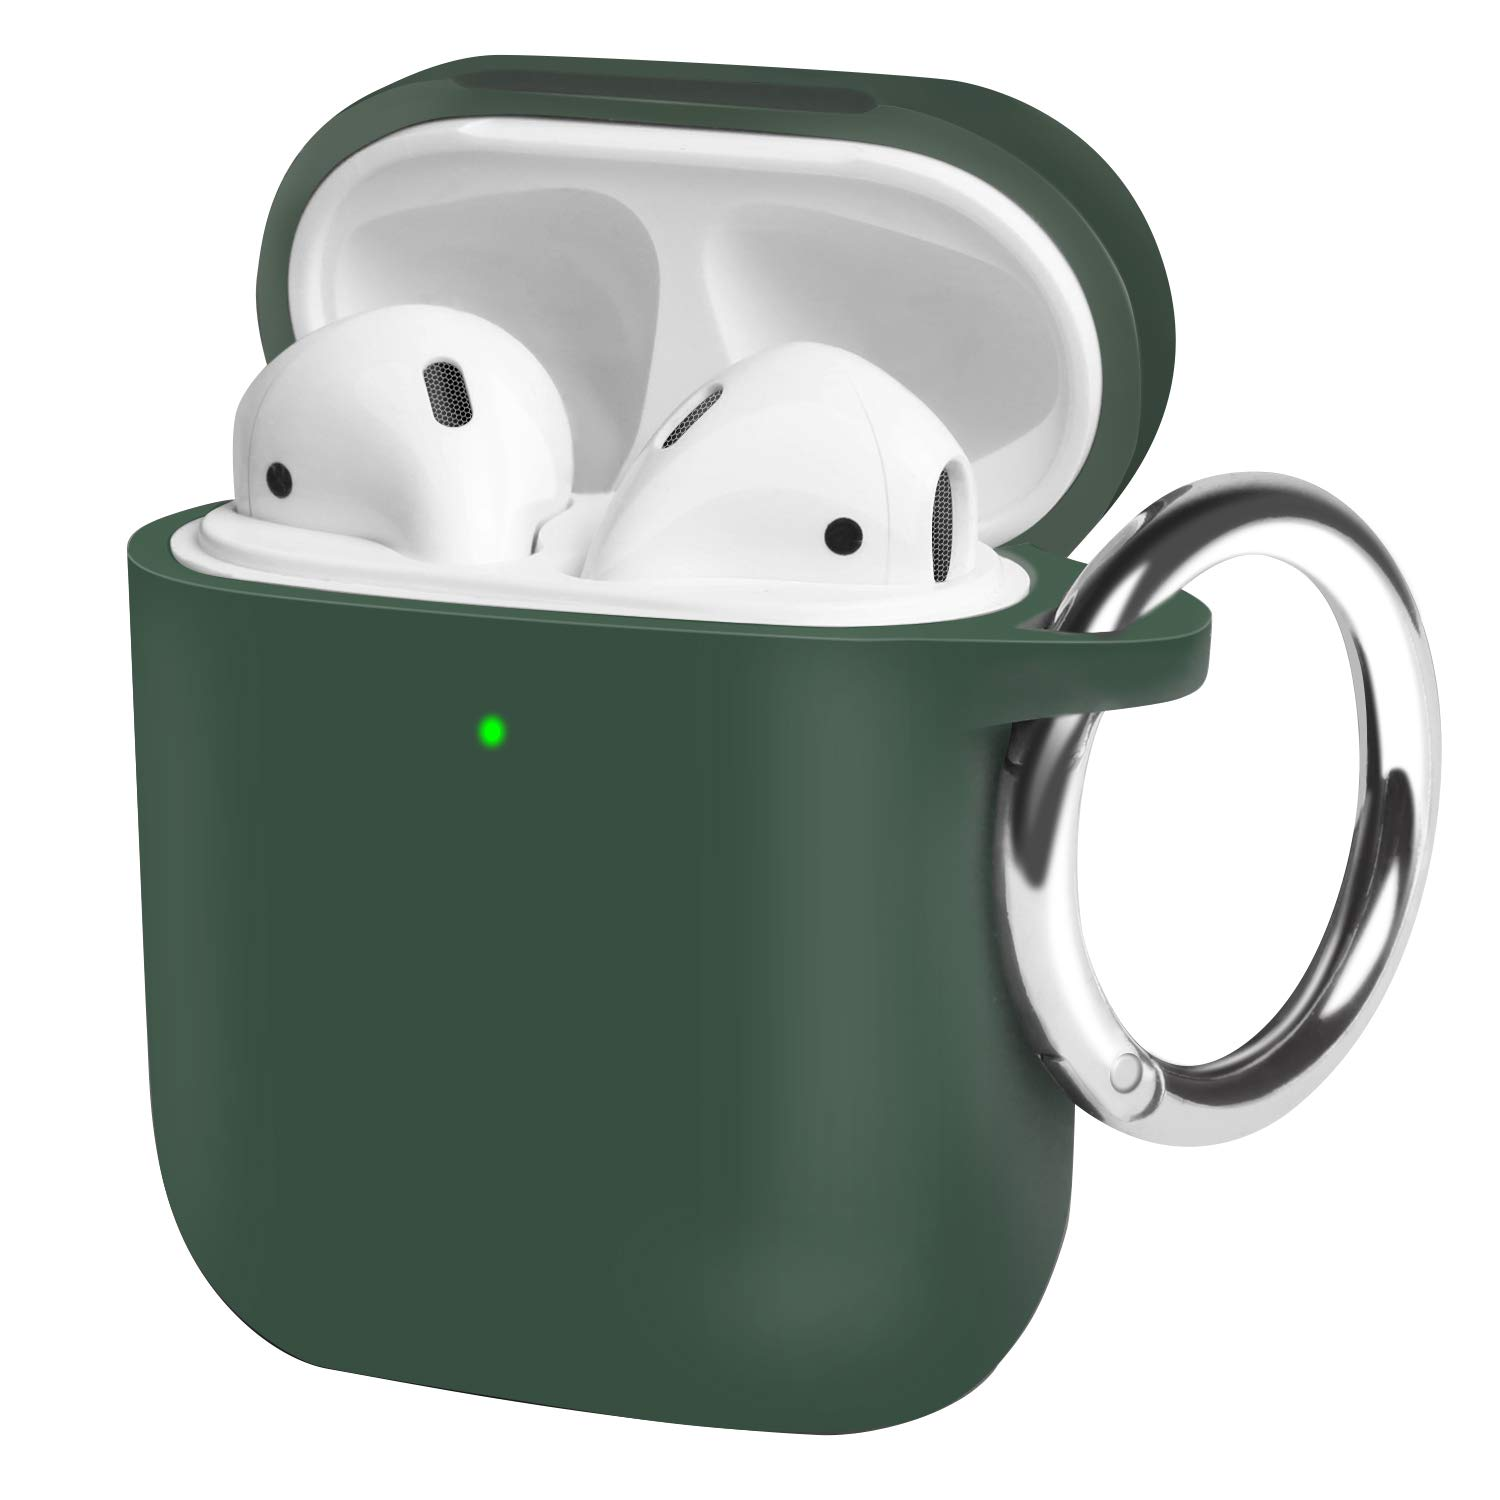 OTOFLY AirPods Case, with Detachable Round Carabiner Full Body Protection Silicone Cover Compatible with AirPods 2&1 [Front LED Visible/Supports Wireless Charging] (Forest Green)